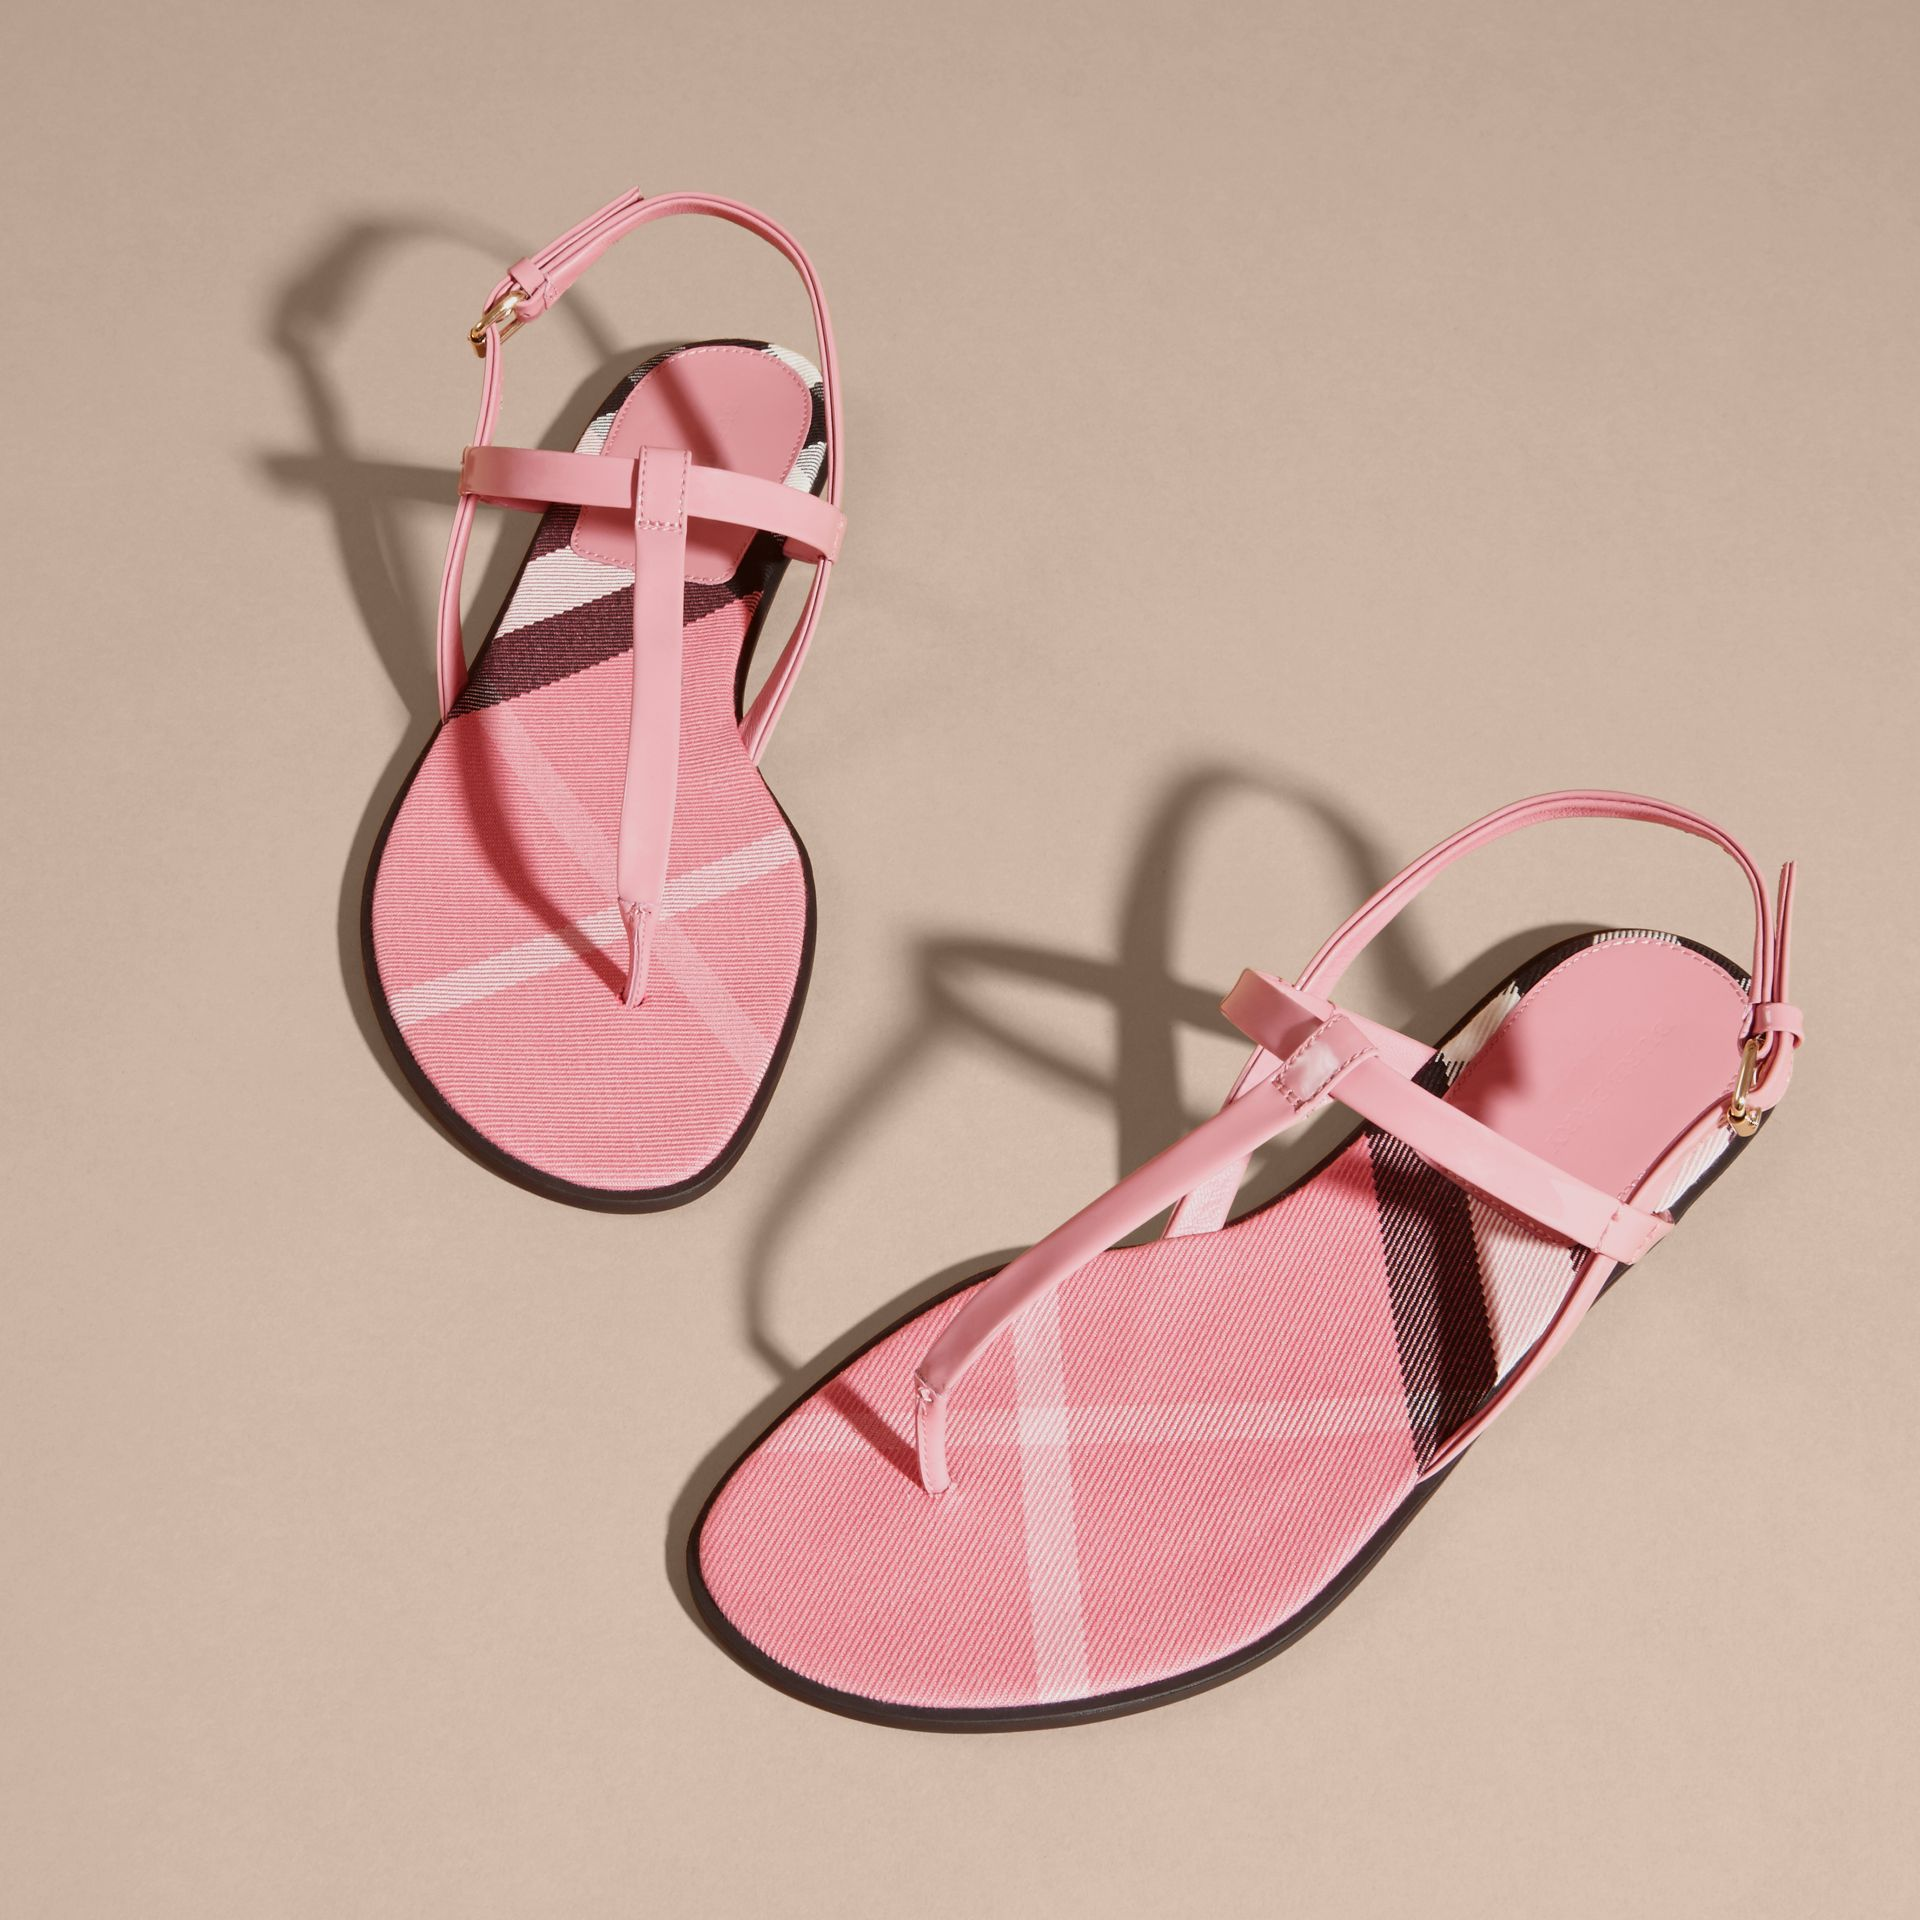 House Check-lined Leather Sandals Berry Pink - gallery image 3